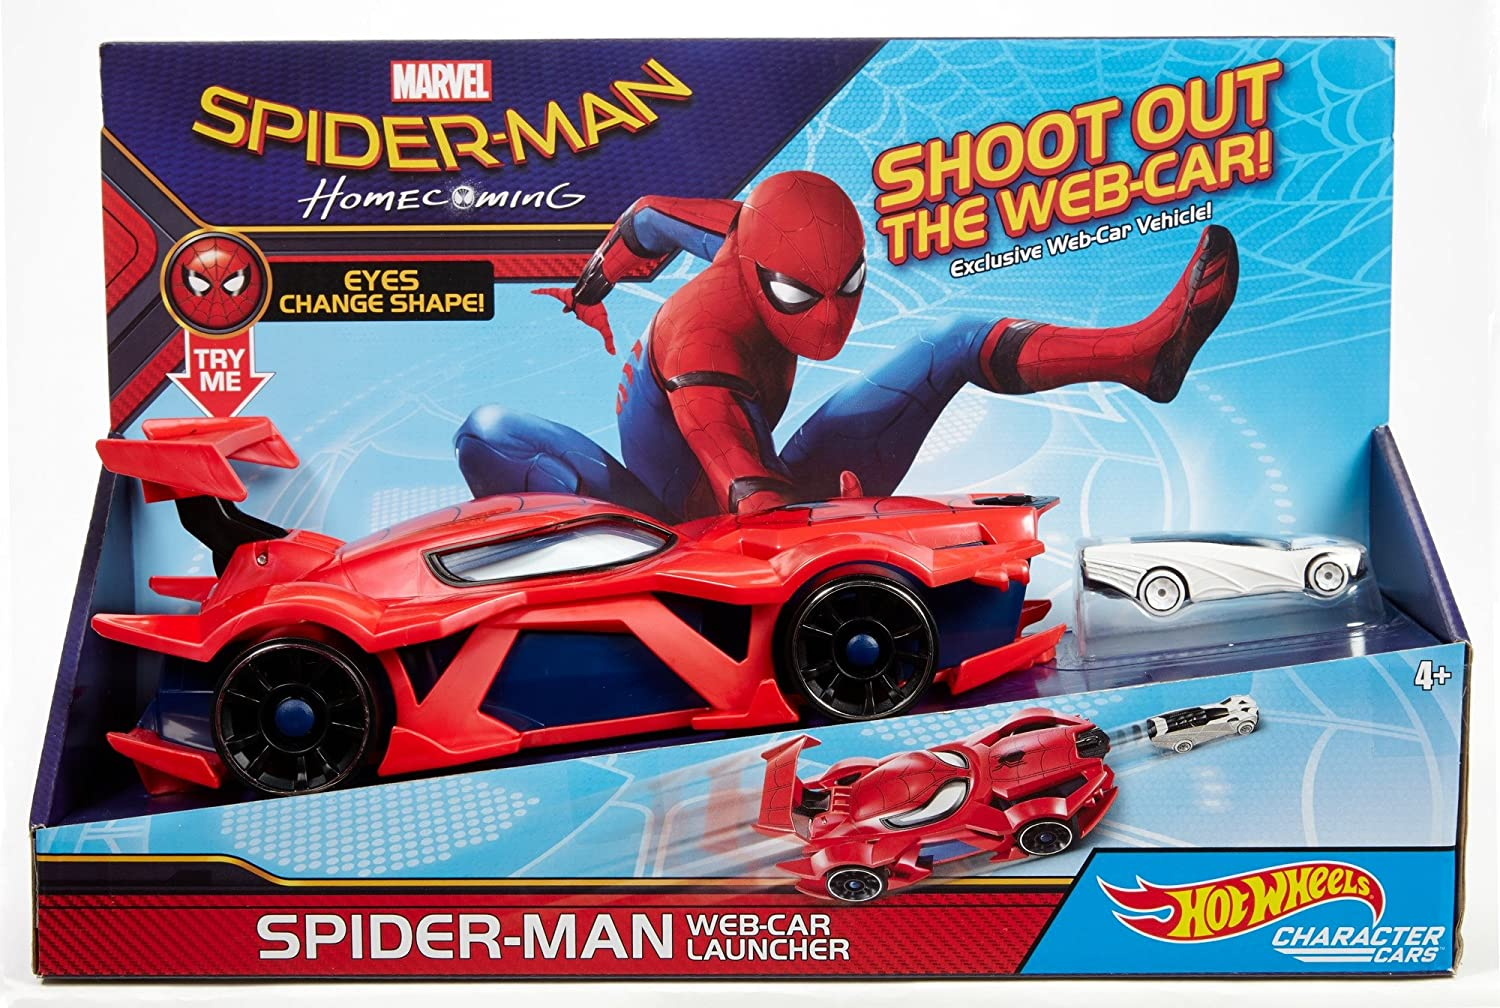 Hot Wheels Marvel Iron Man Vehicle and Launcher IW2 Toy Mattel GBW09